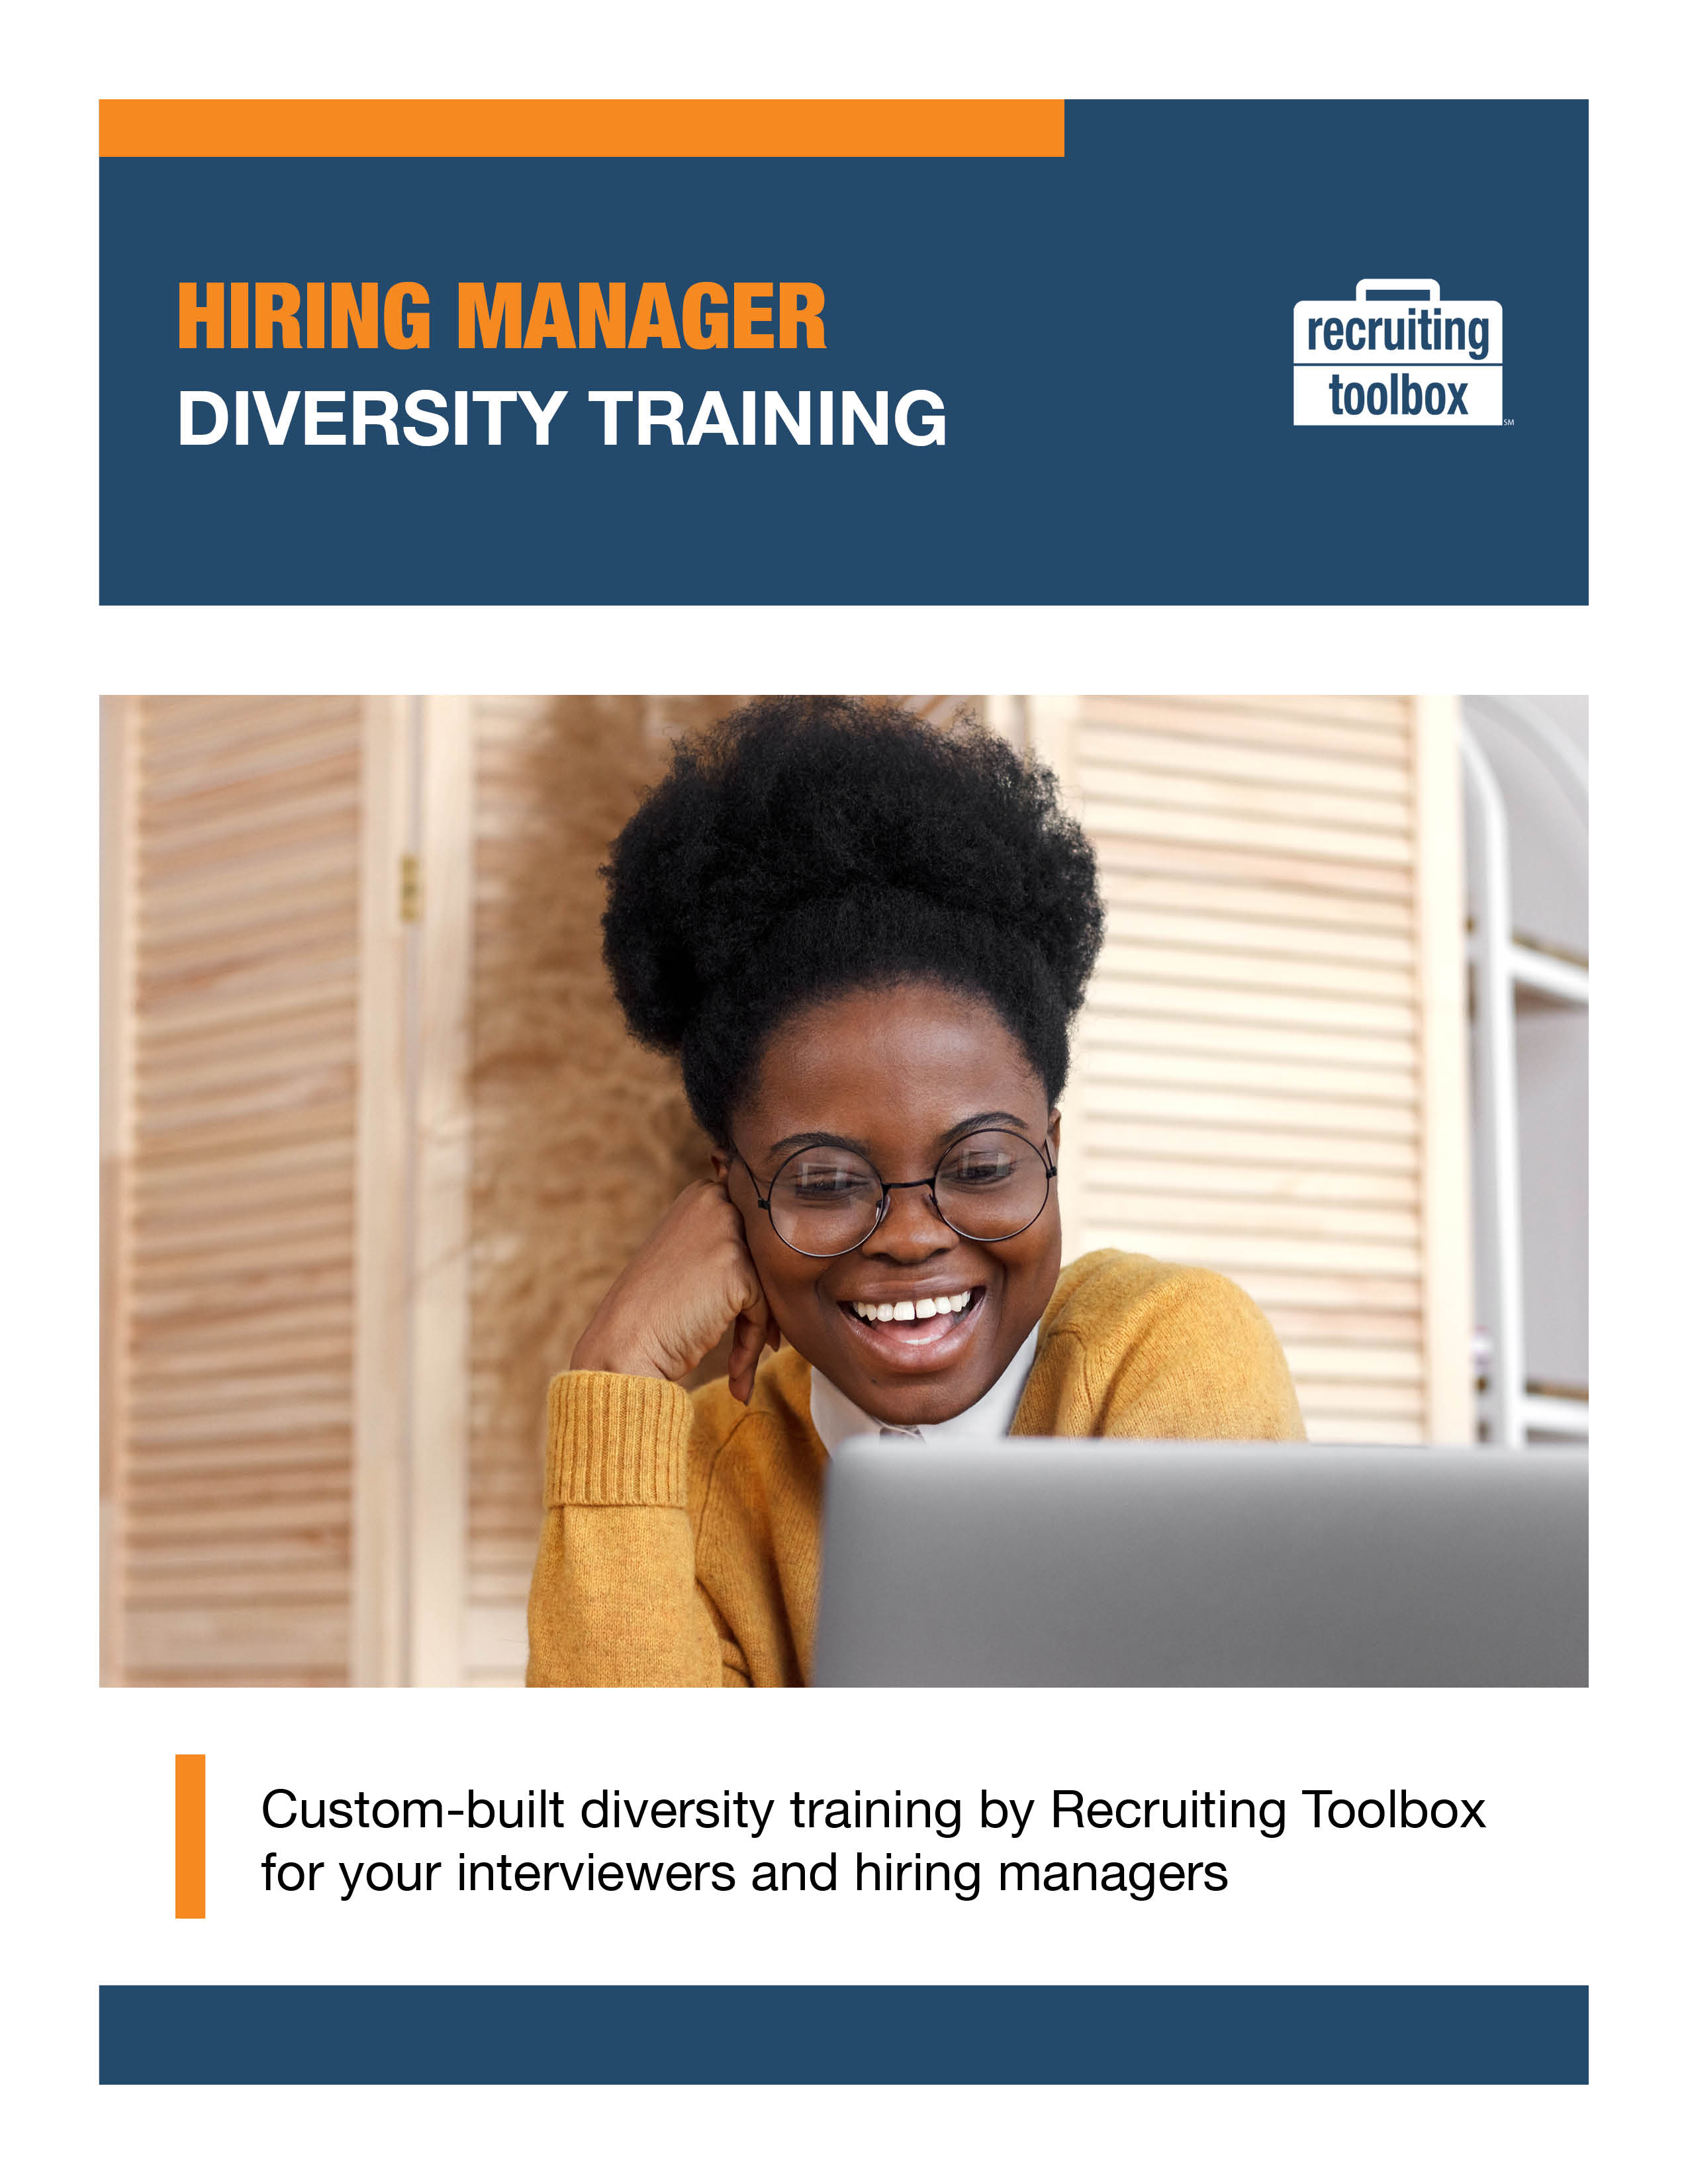 Hiring Manager Diversity Training Overview